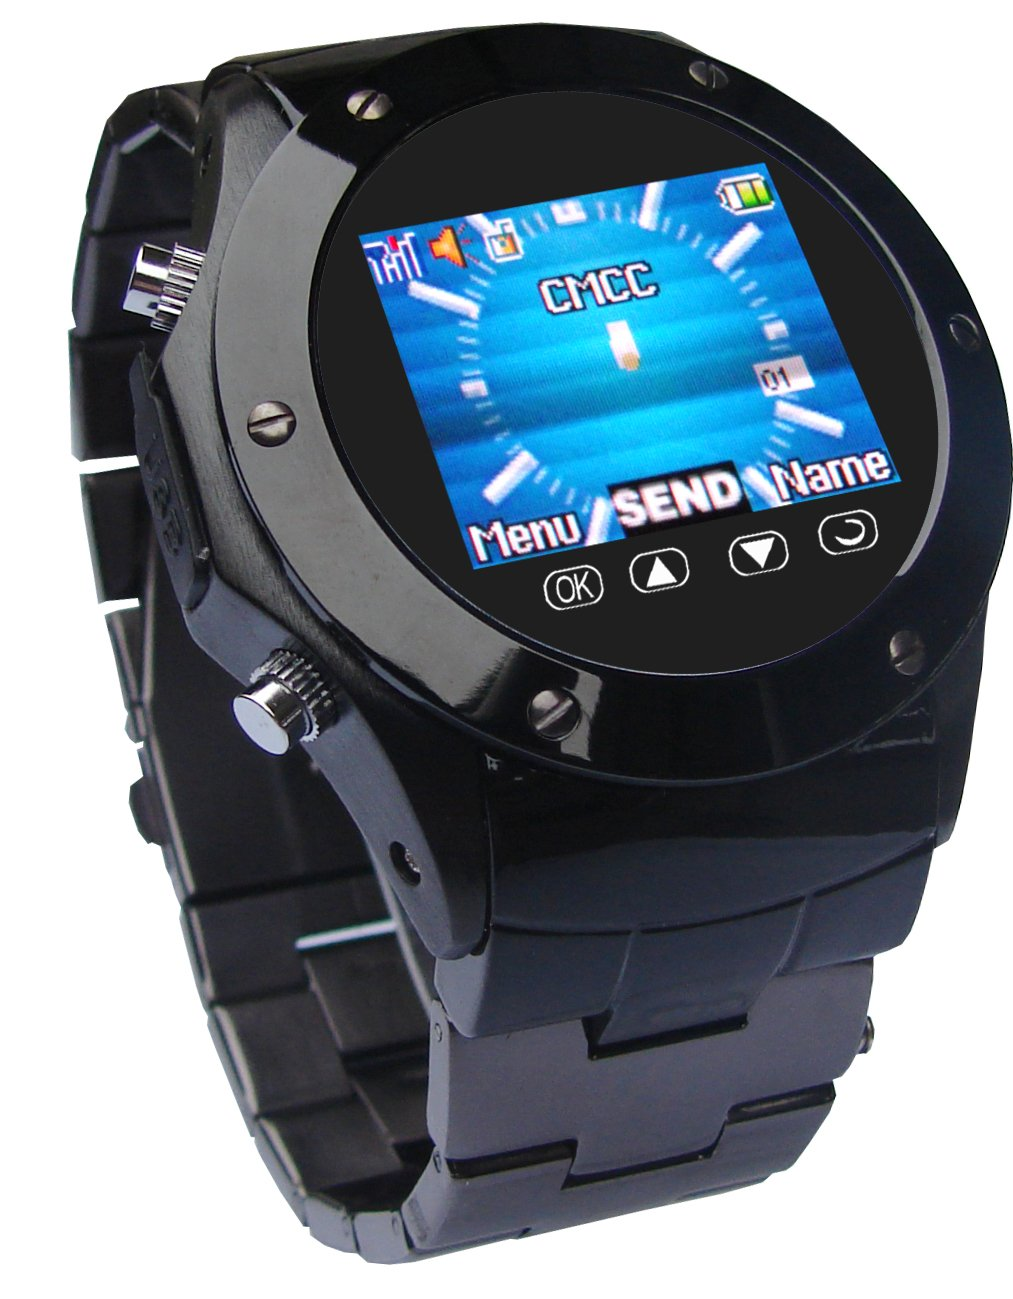 newer and android watch mobile phone kk z1 price not